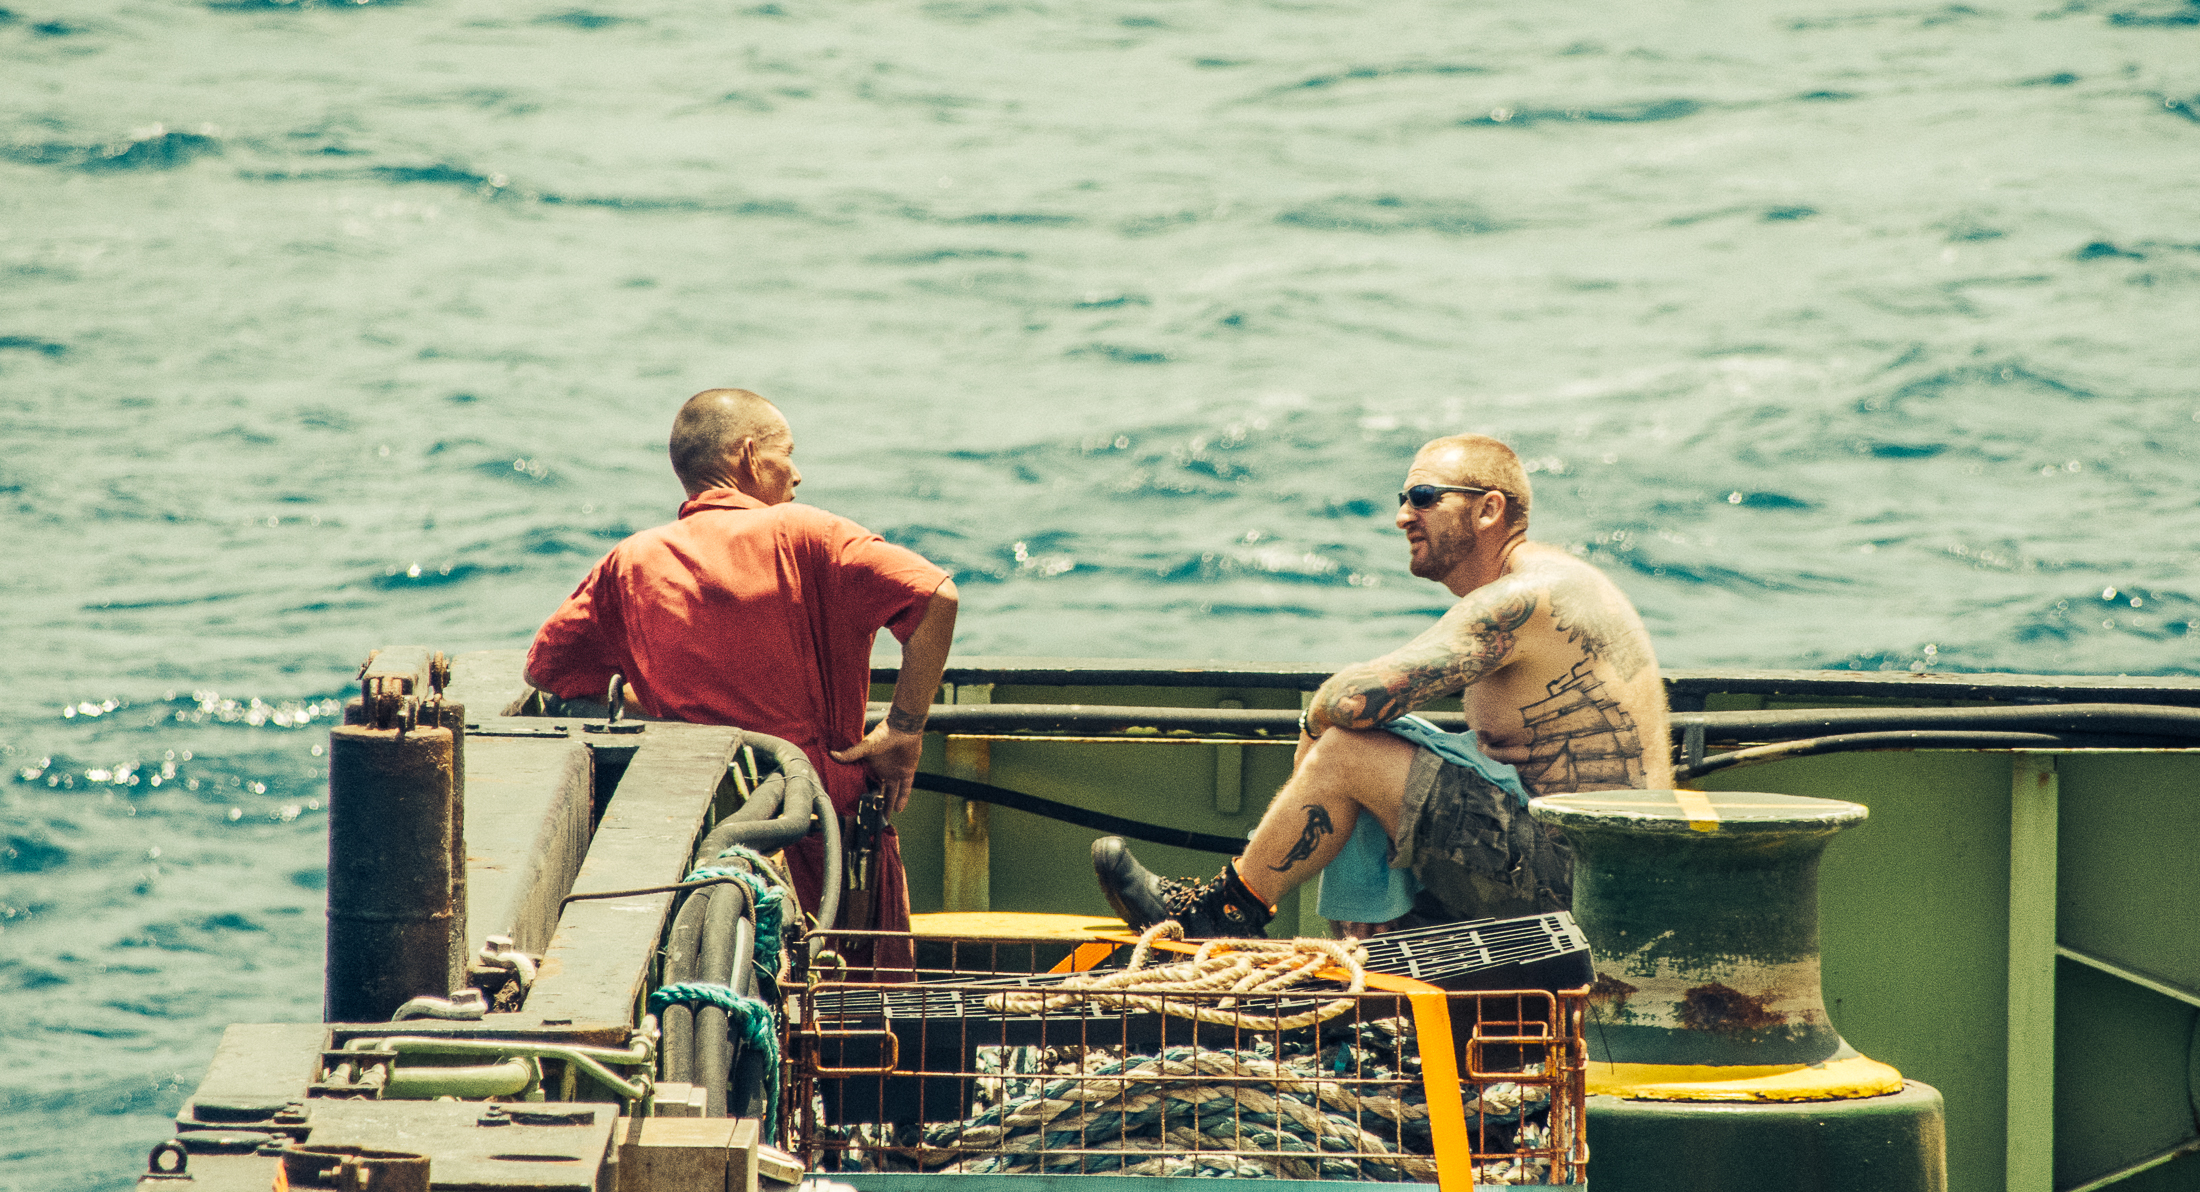 Sailors John and Marc resting during one of the few quiet moments at the deck of the ship.